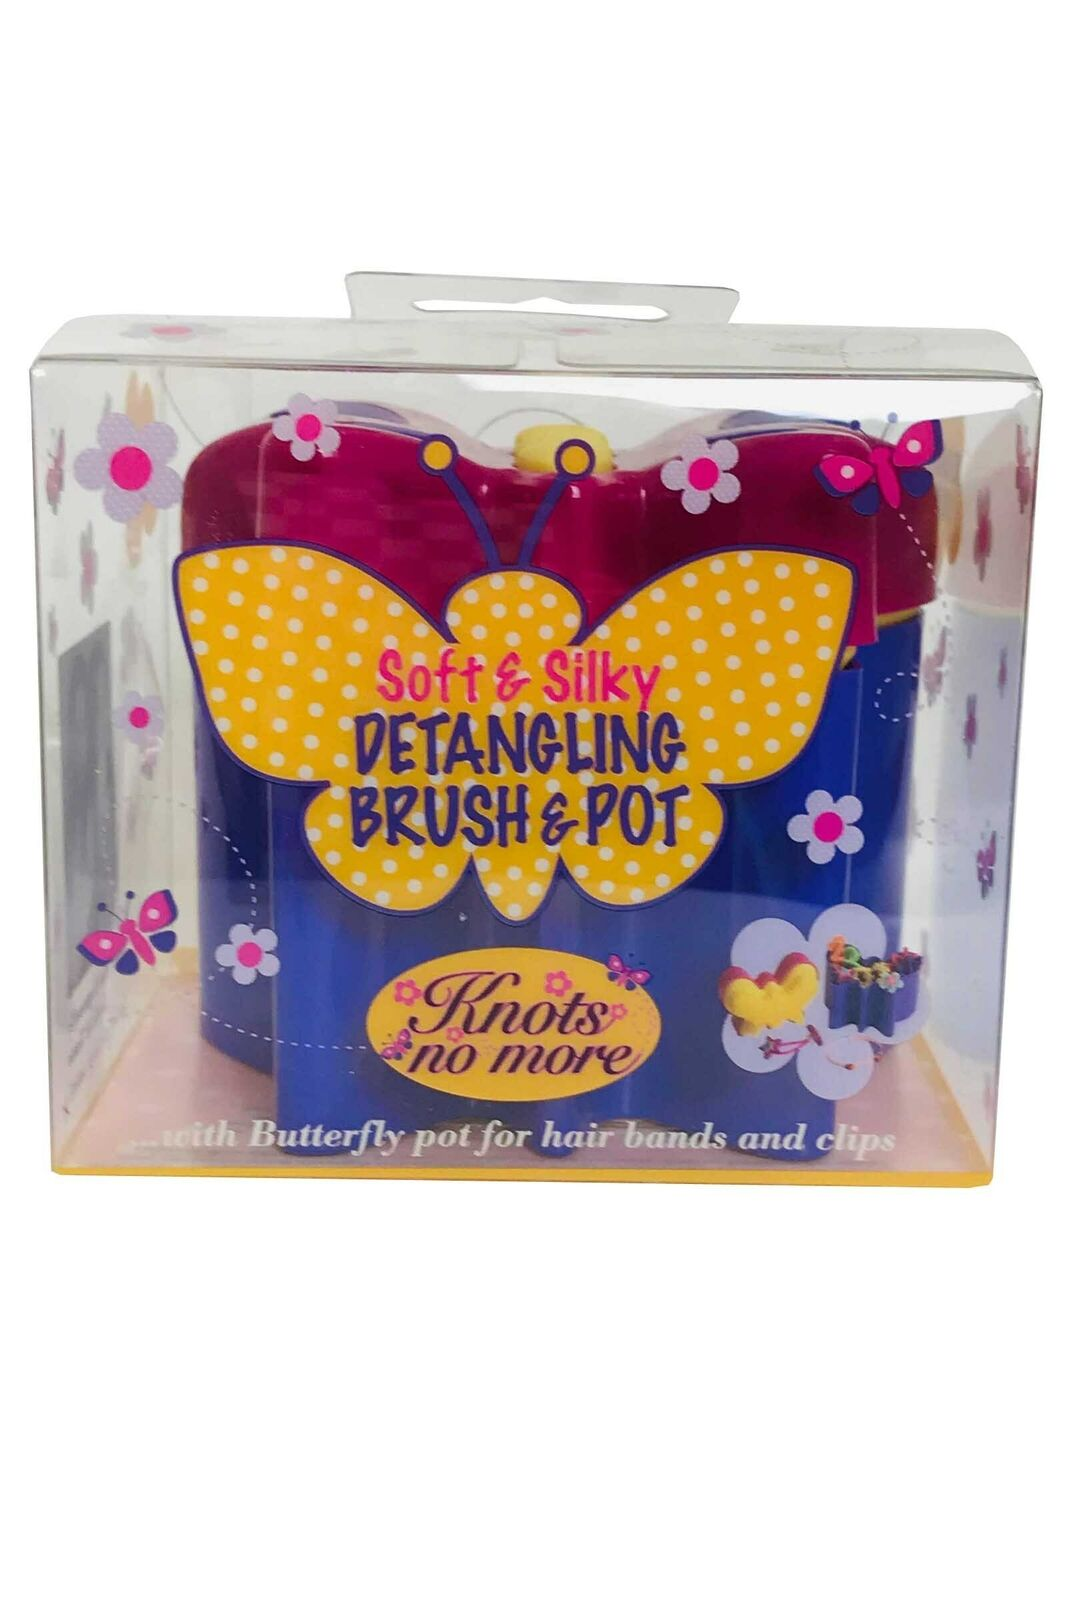 Knots no more Soft & Silky Butterfly Detangling Brush